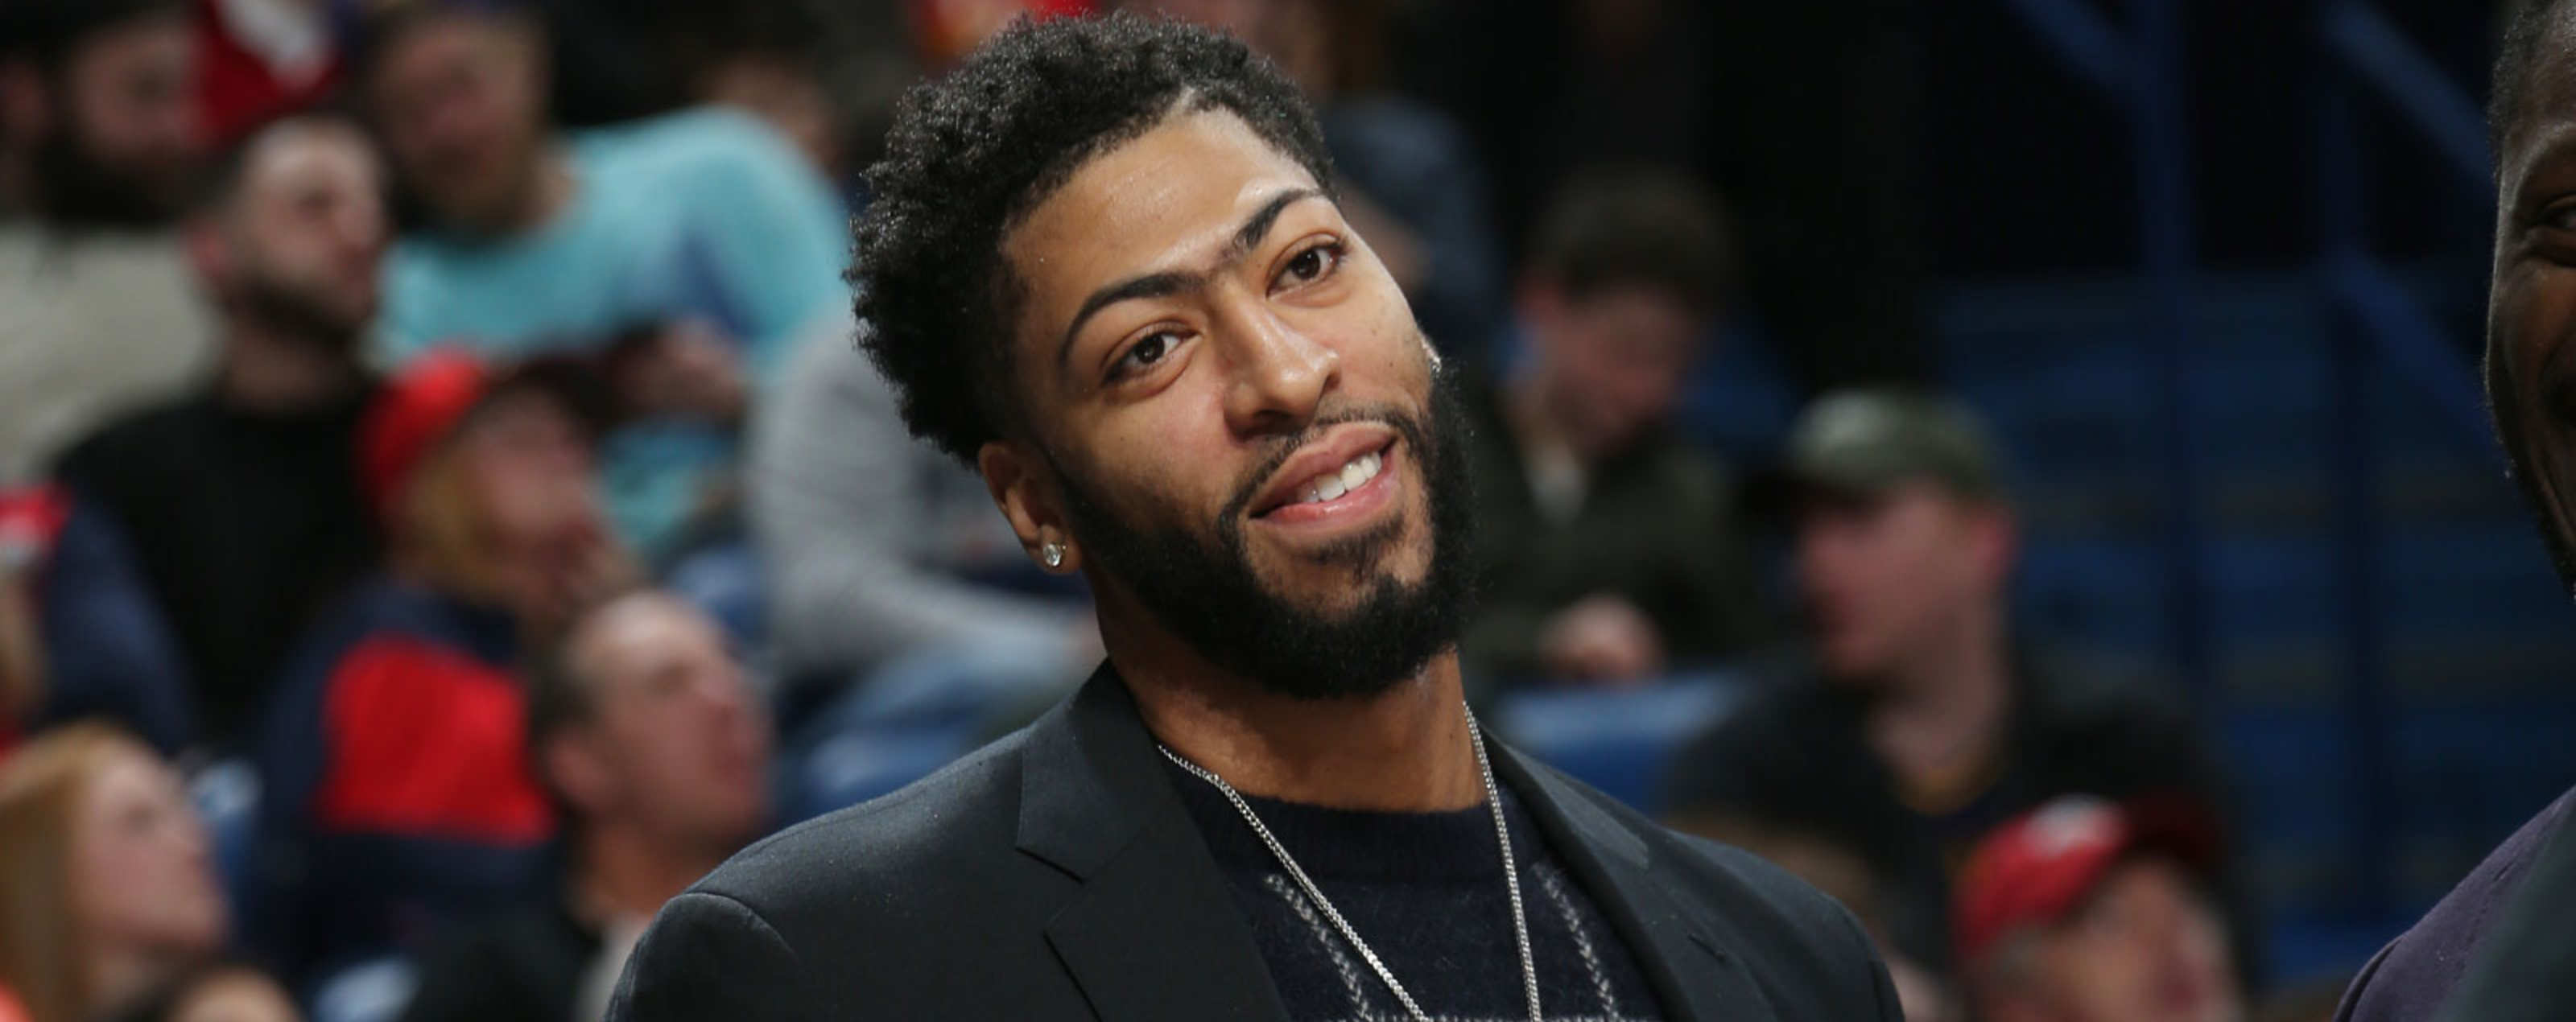 Anthony Davis number 23 of the New Orleans Pelicans smiles against the Denver Nuggets on January 30, 2019 at the Smoothie King Center in New Orleans, Louisiana